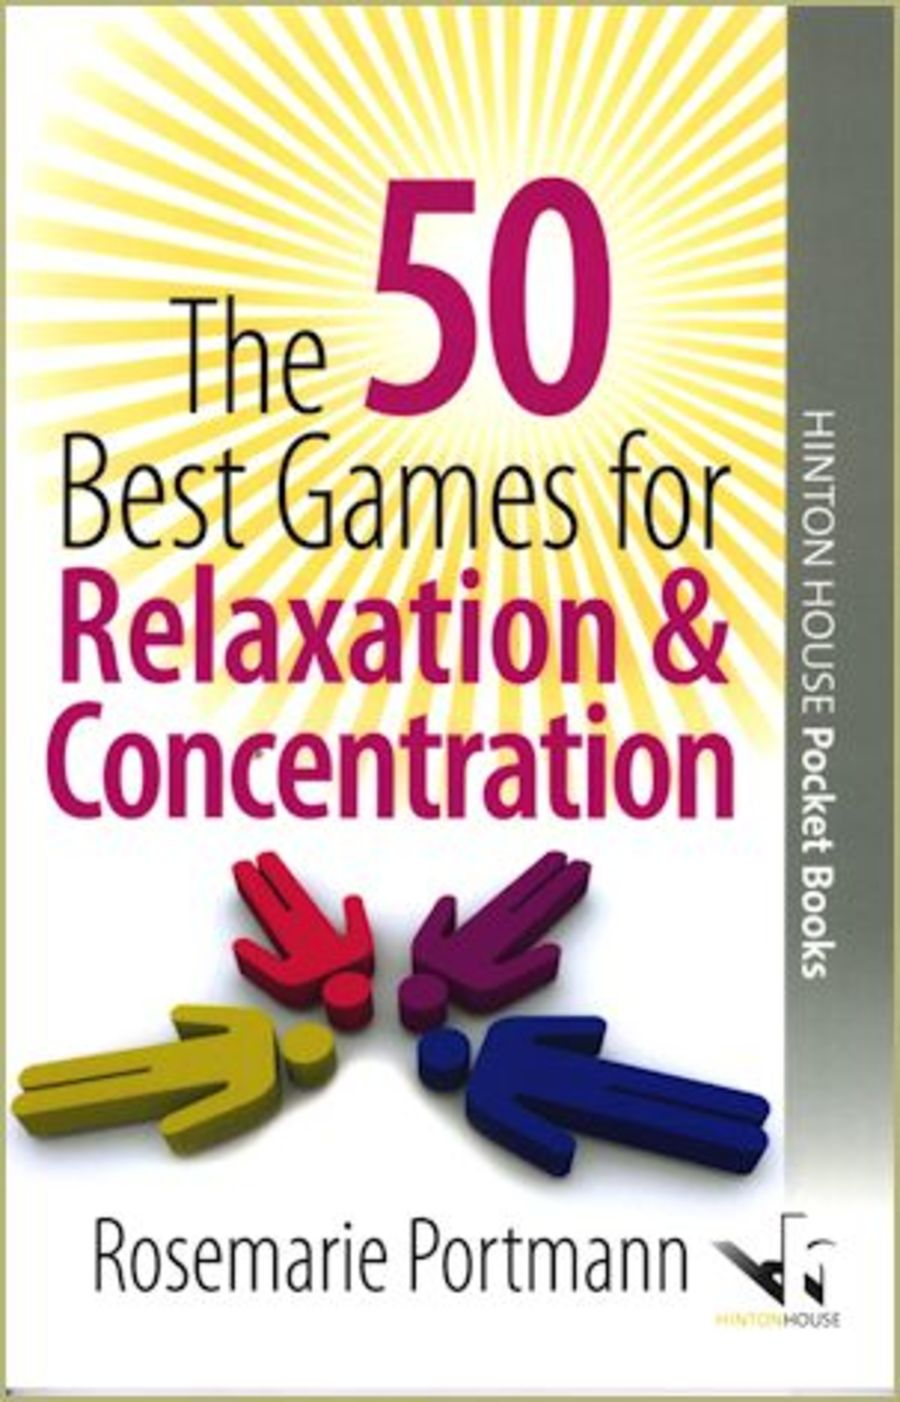 50 Best Games for Relaxation and Concentration